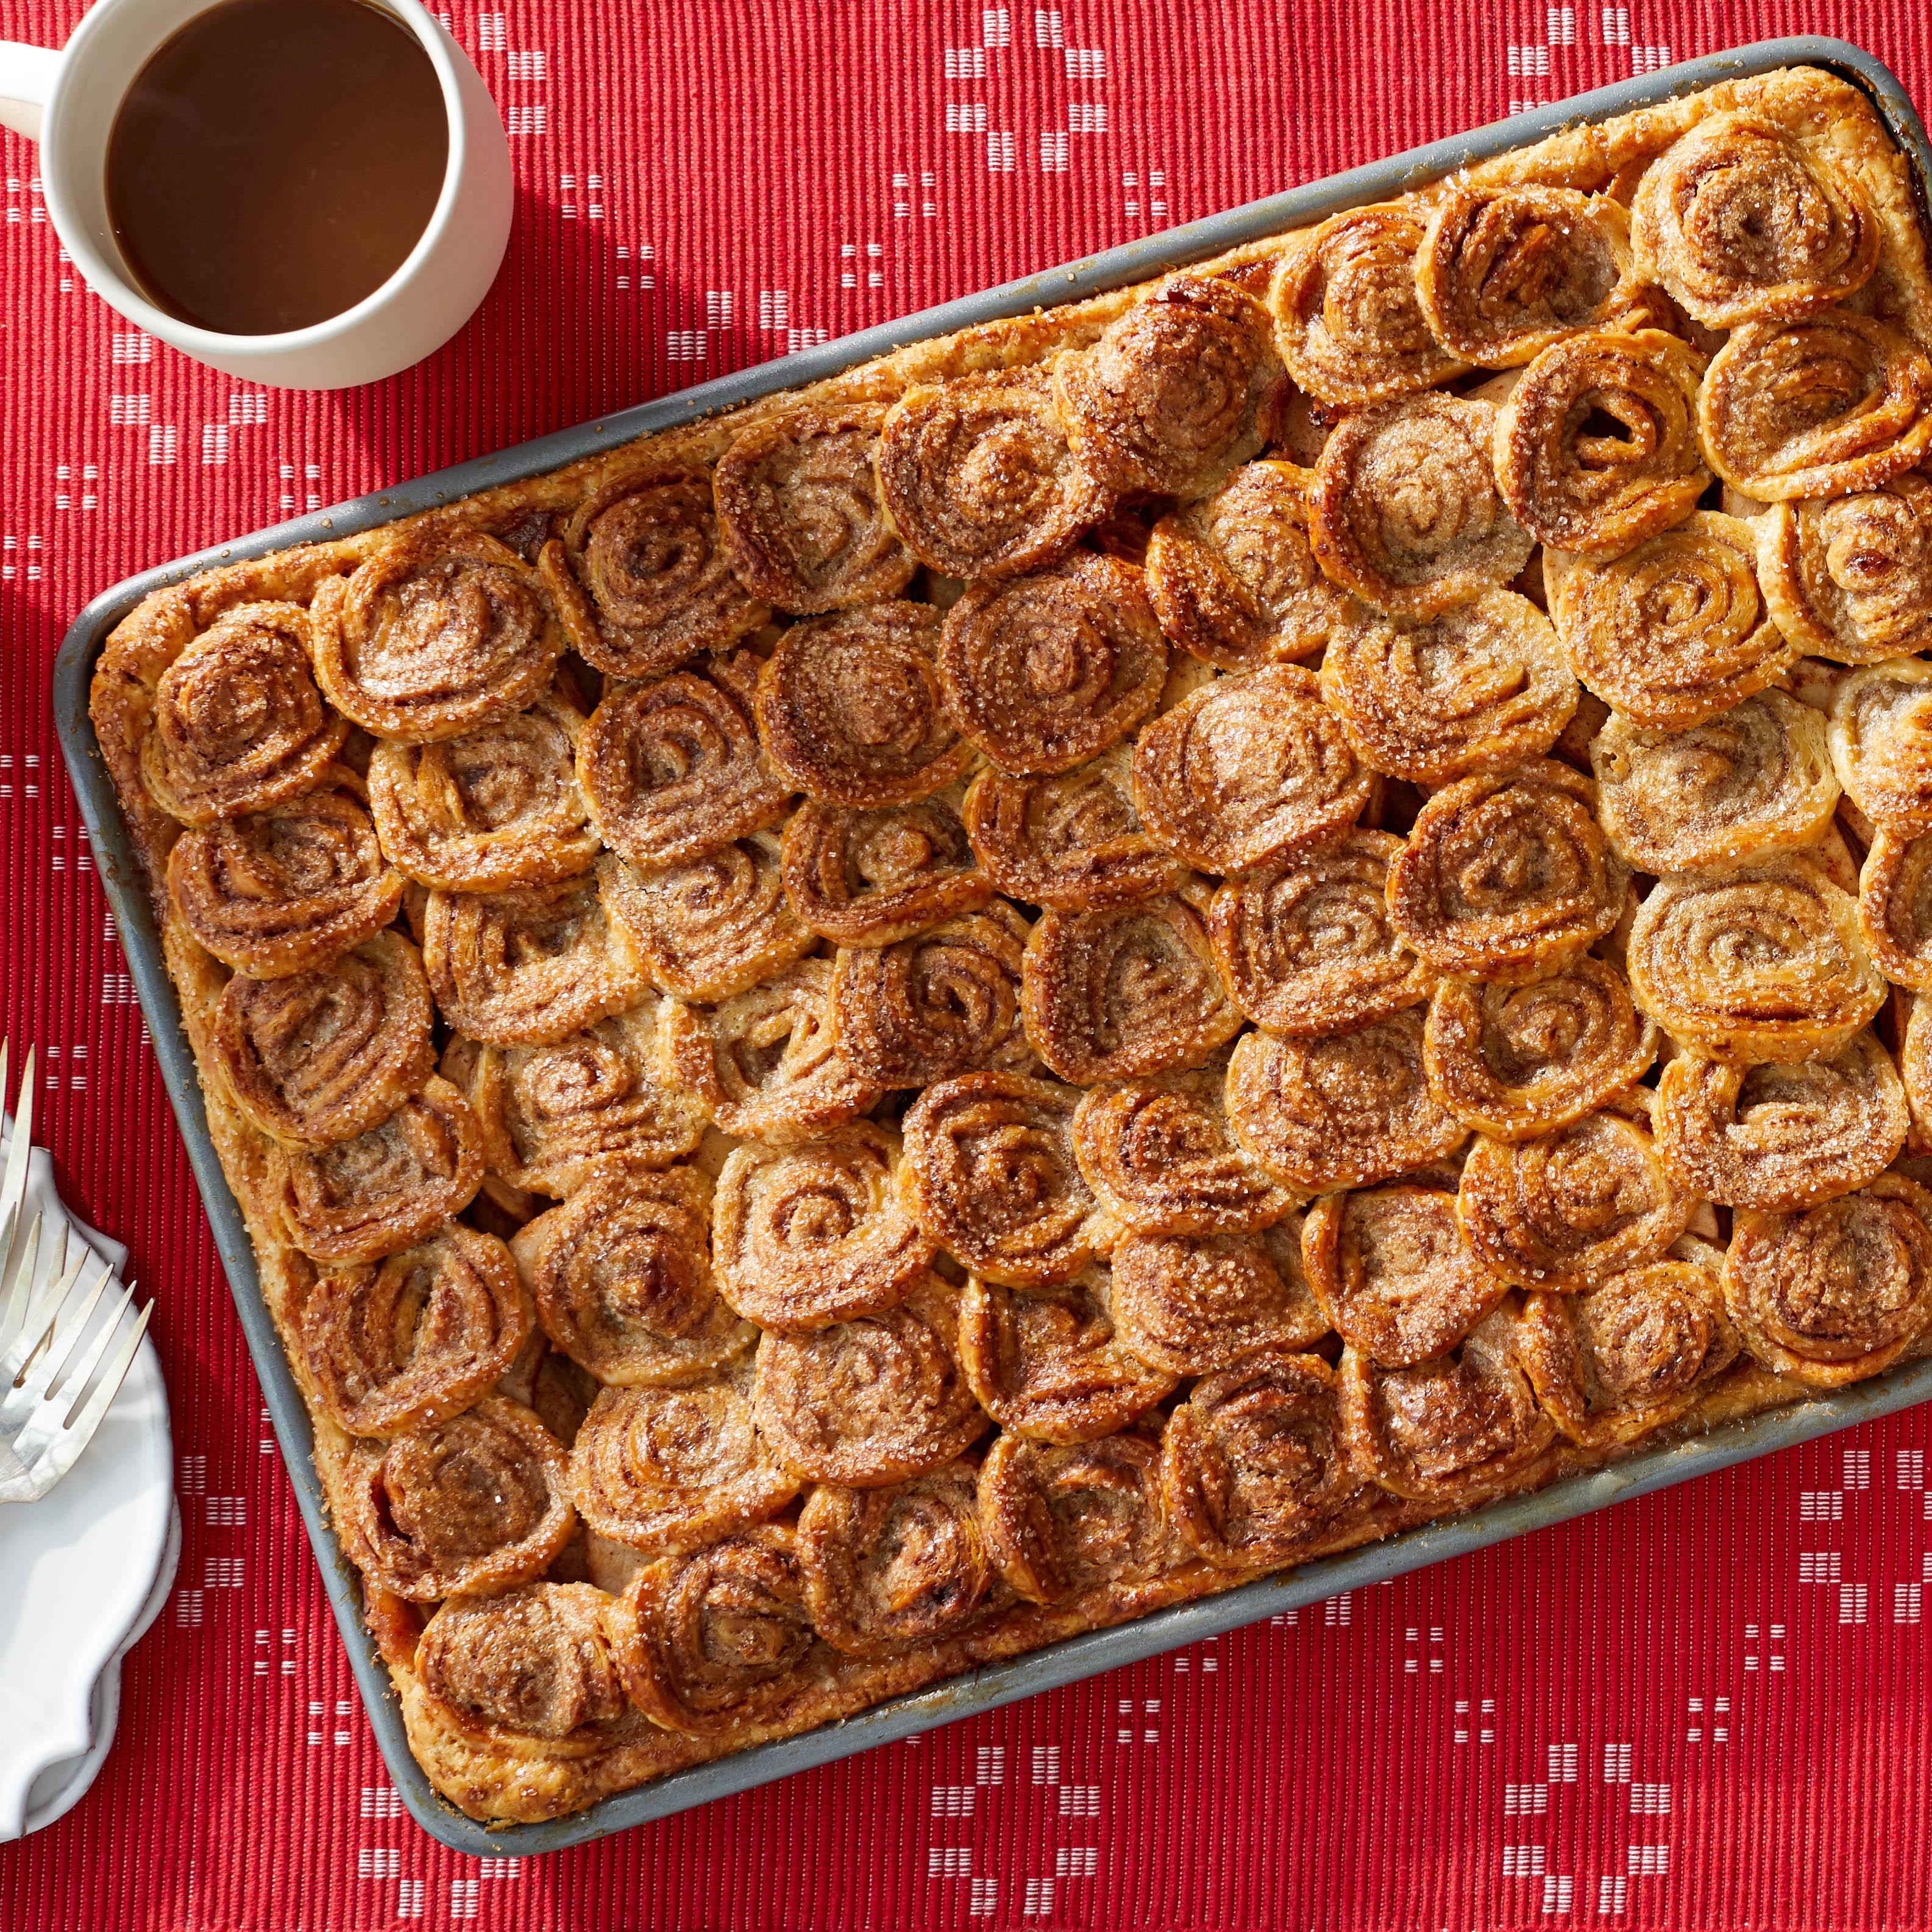 Martha's Amazing Apple Pie Has 63 Mini Cinnamon Rolls On Top